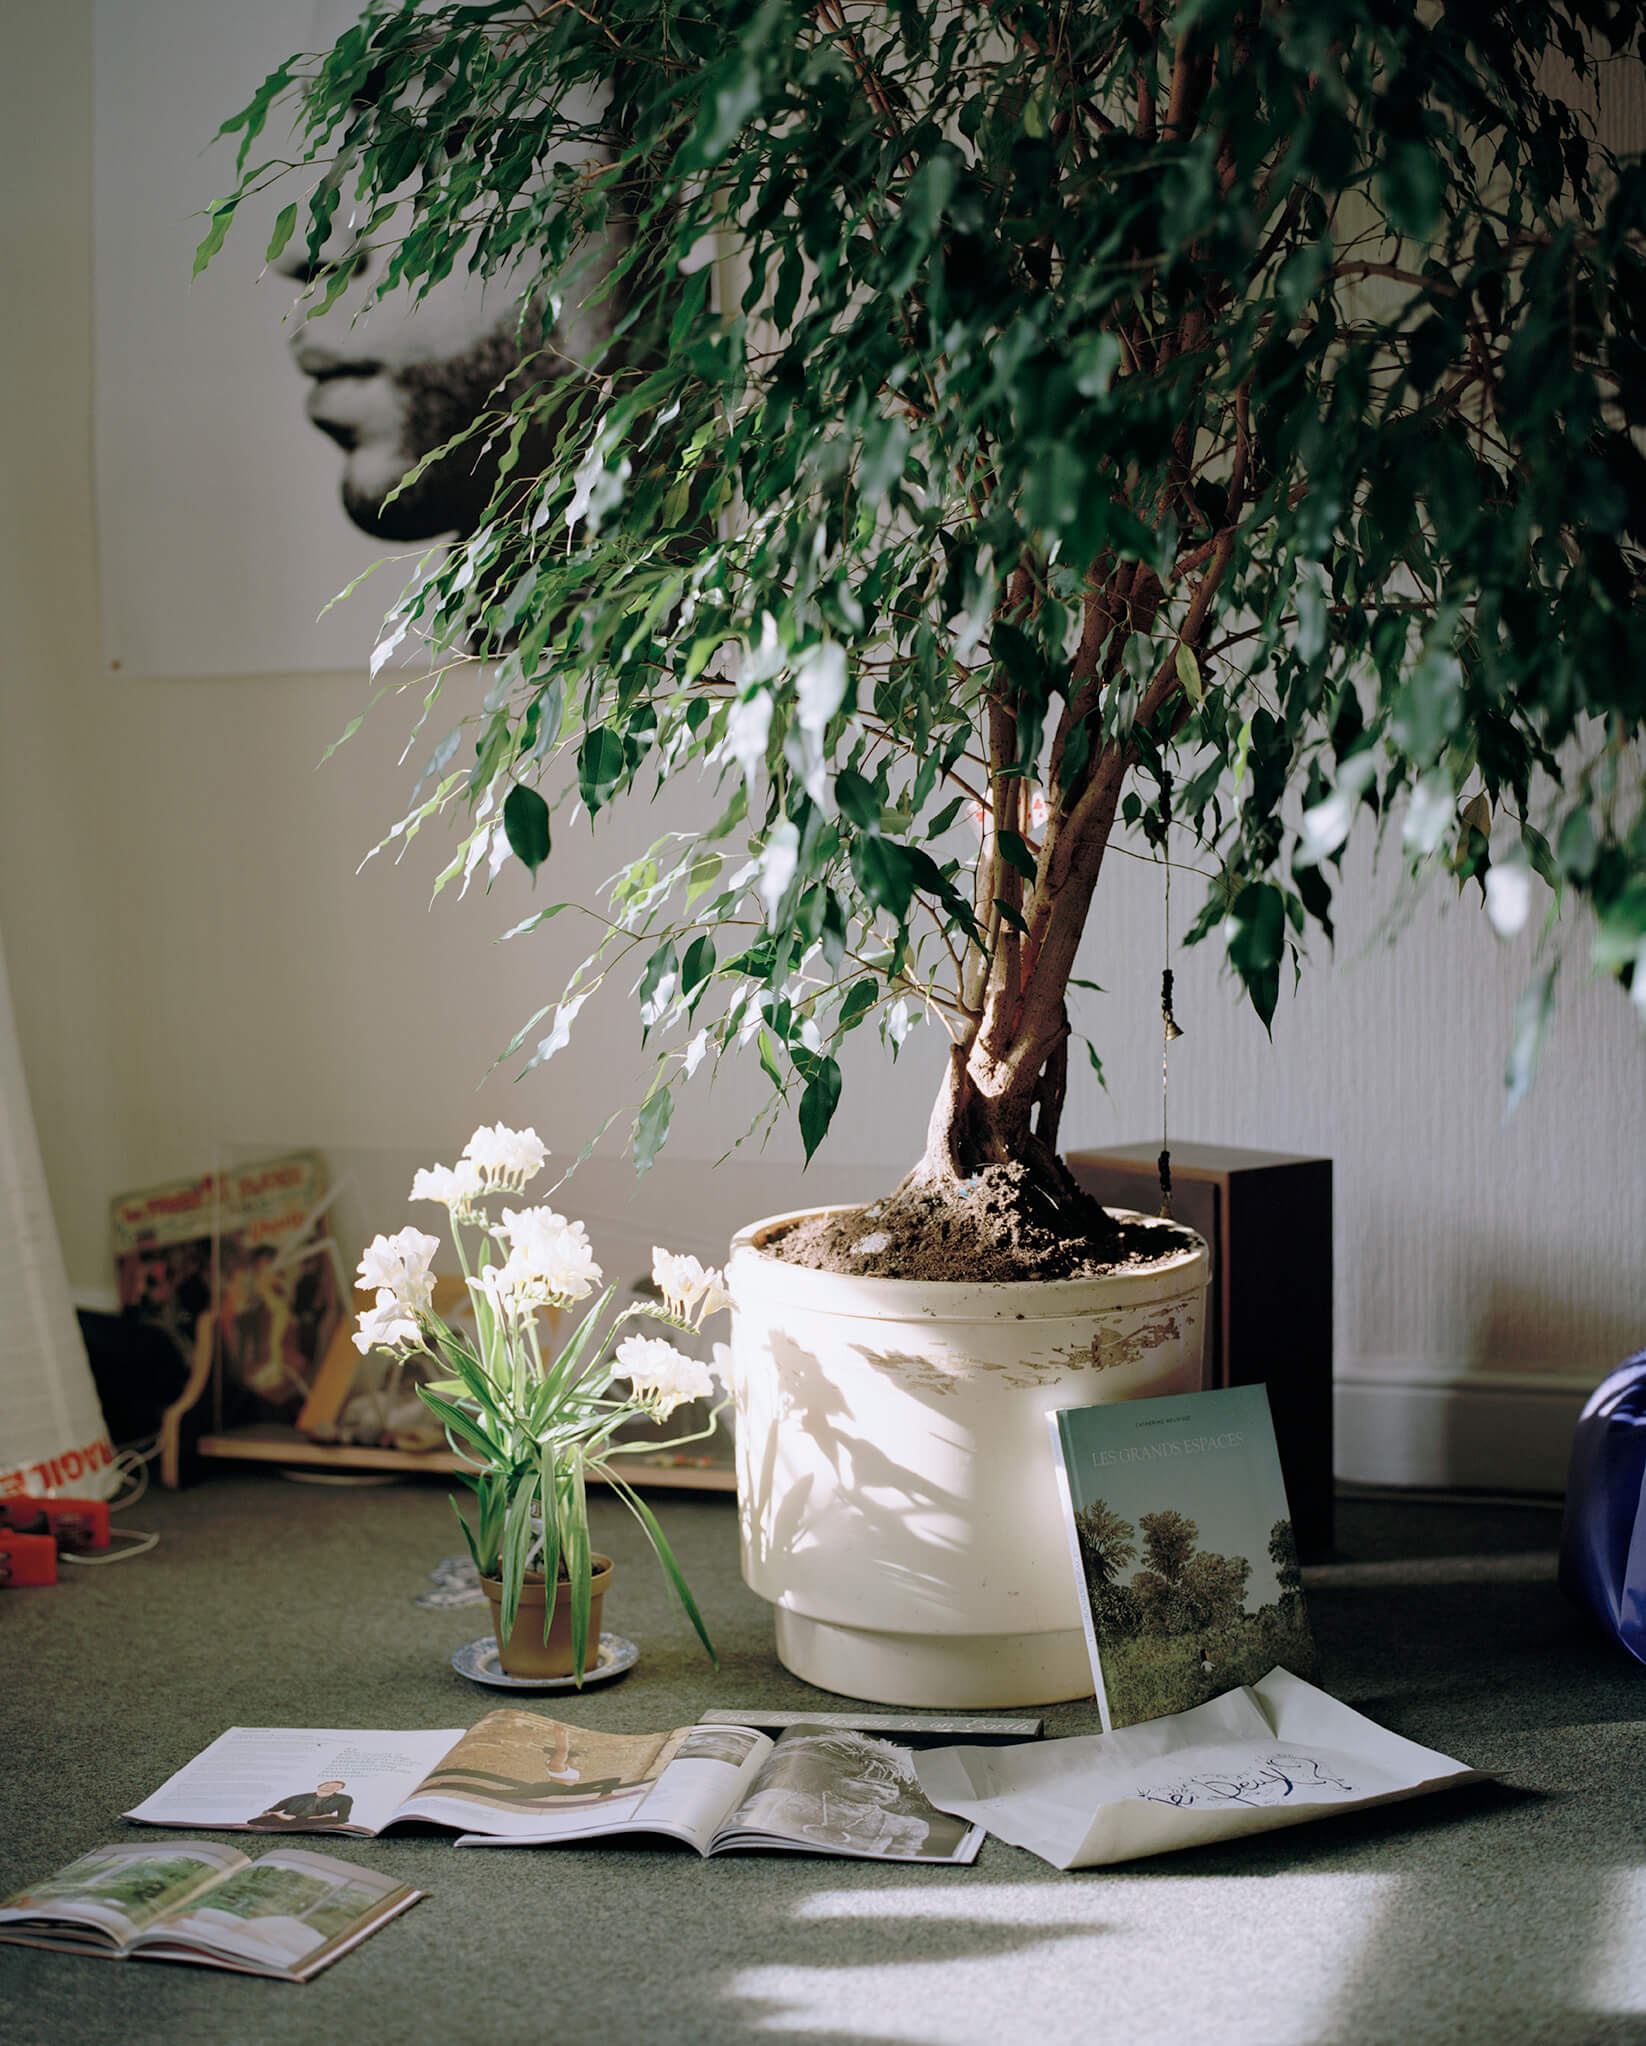 Elliot Cole - A Hull to Hold the Waves at Bay the south west collective of photography beautiful indoor tree